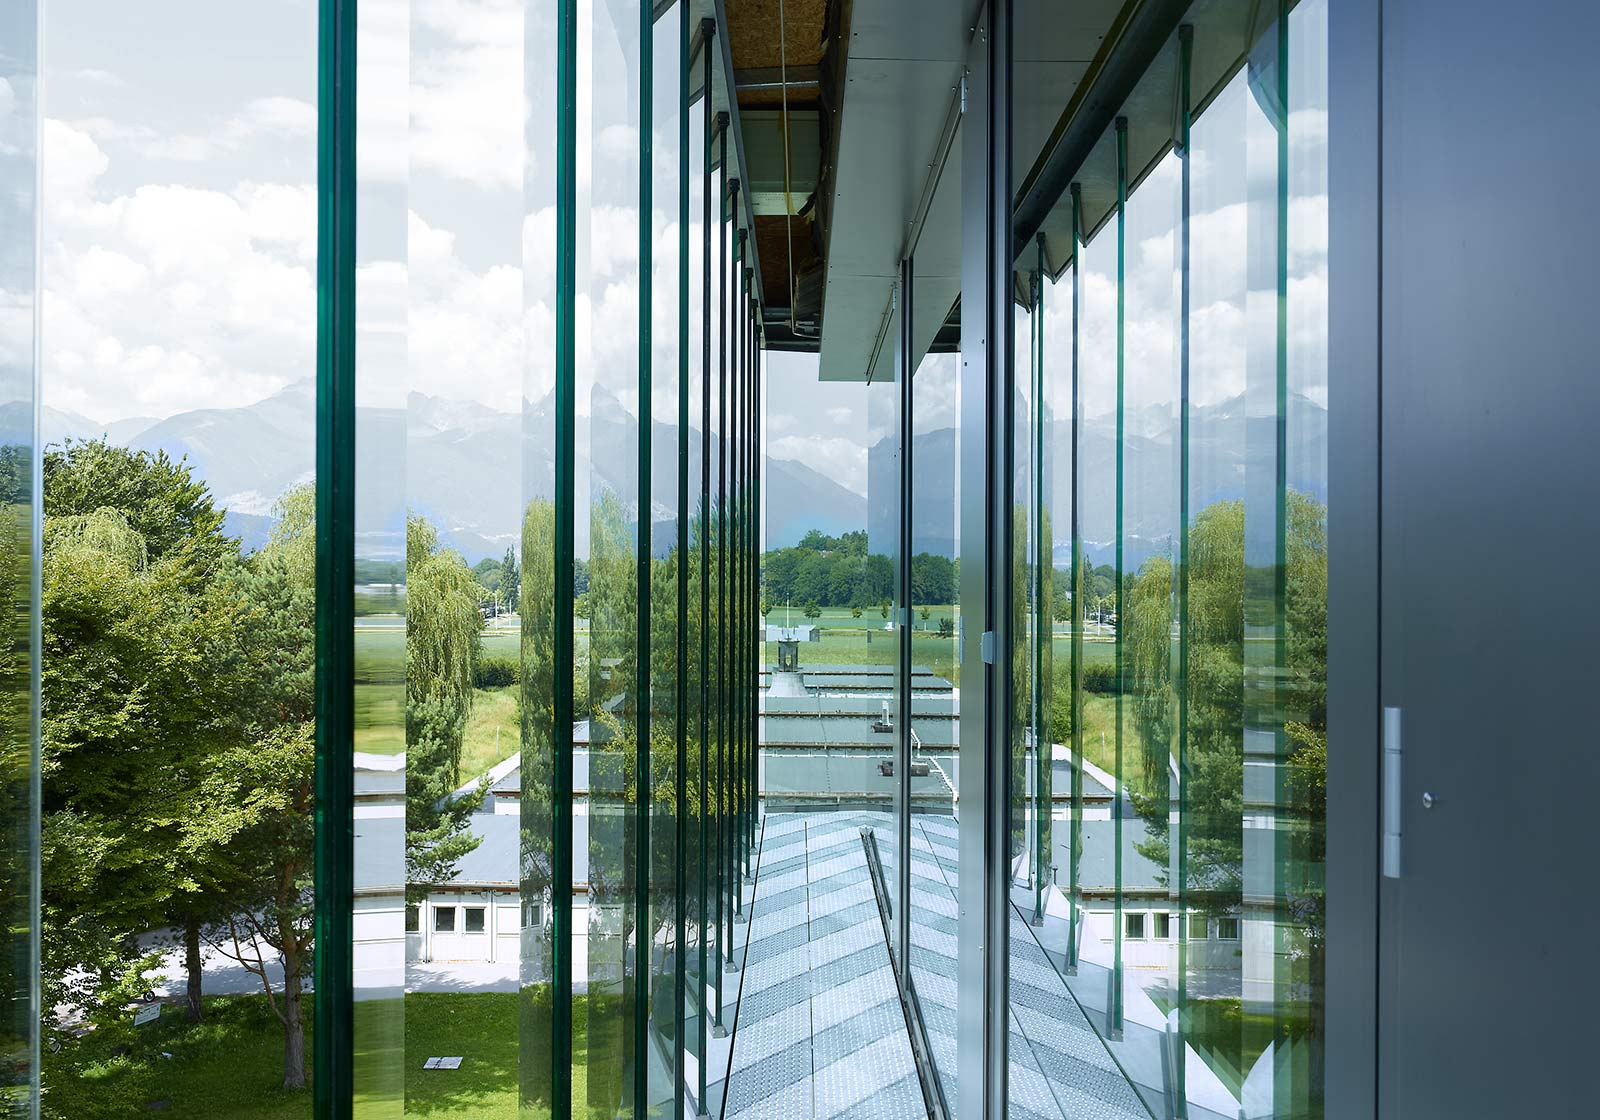 University of Innsbruck, AT